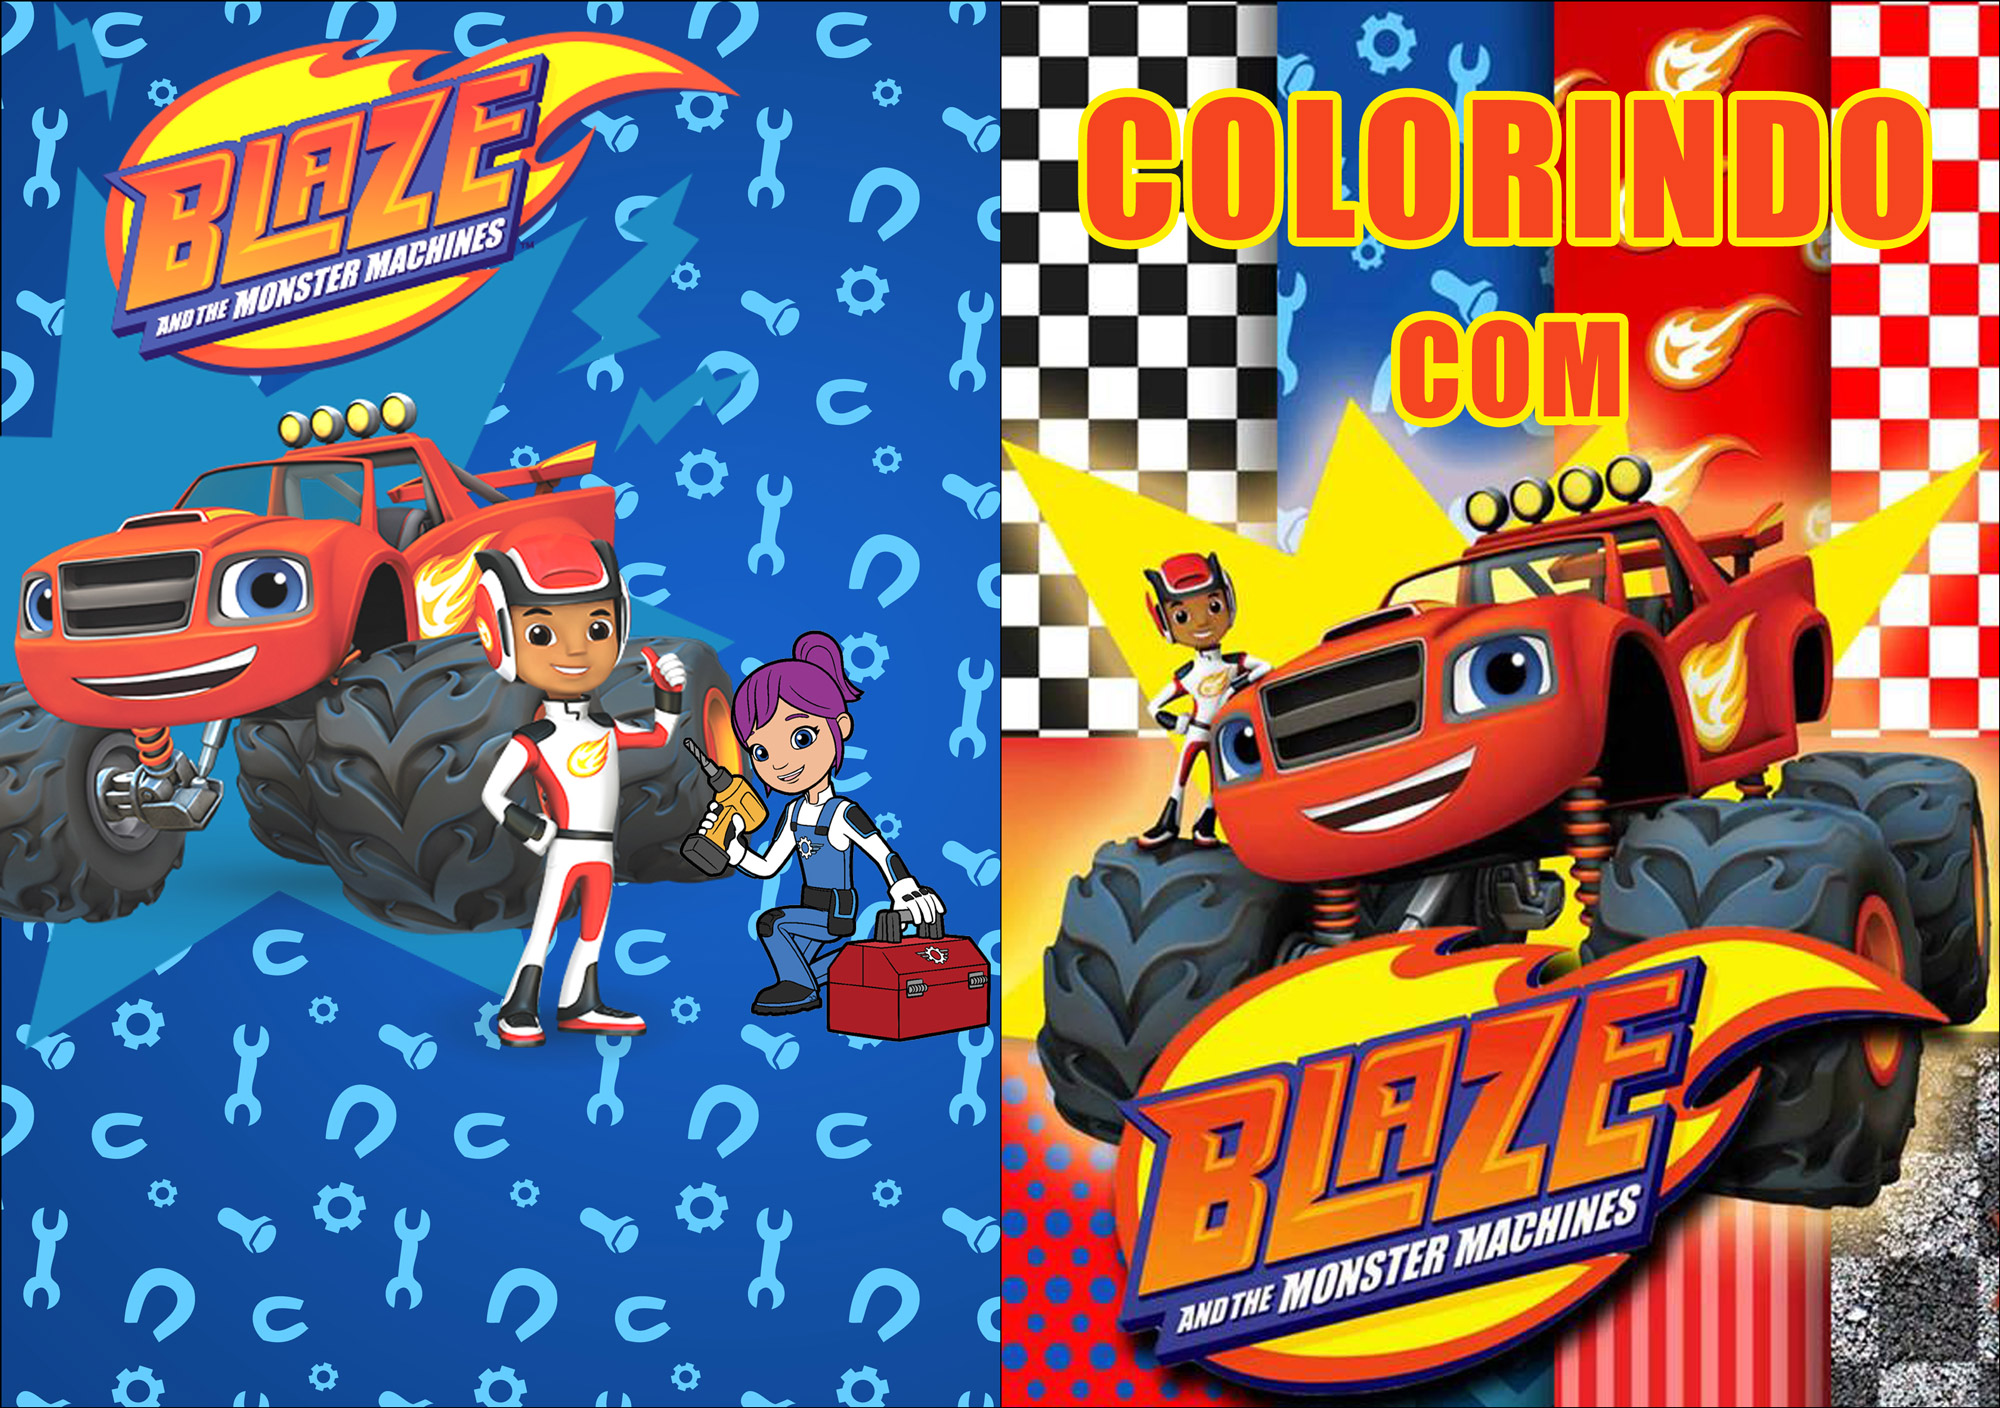 Capa Revistinha para colorir Blaze and the monster machines 2